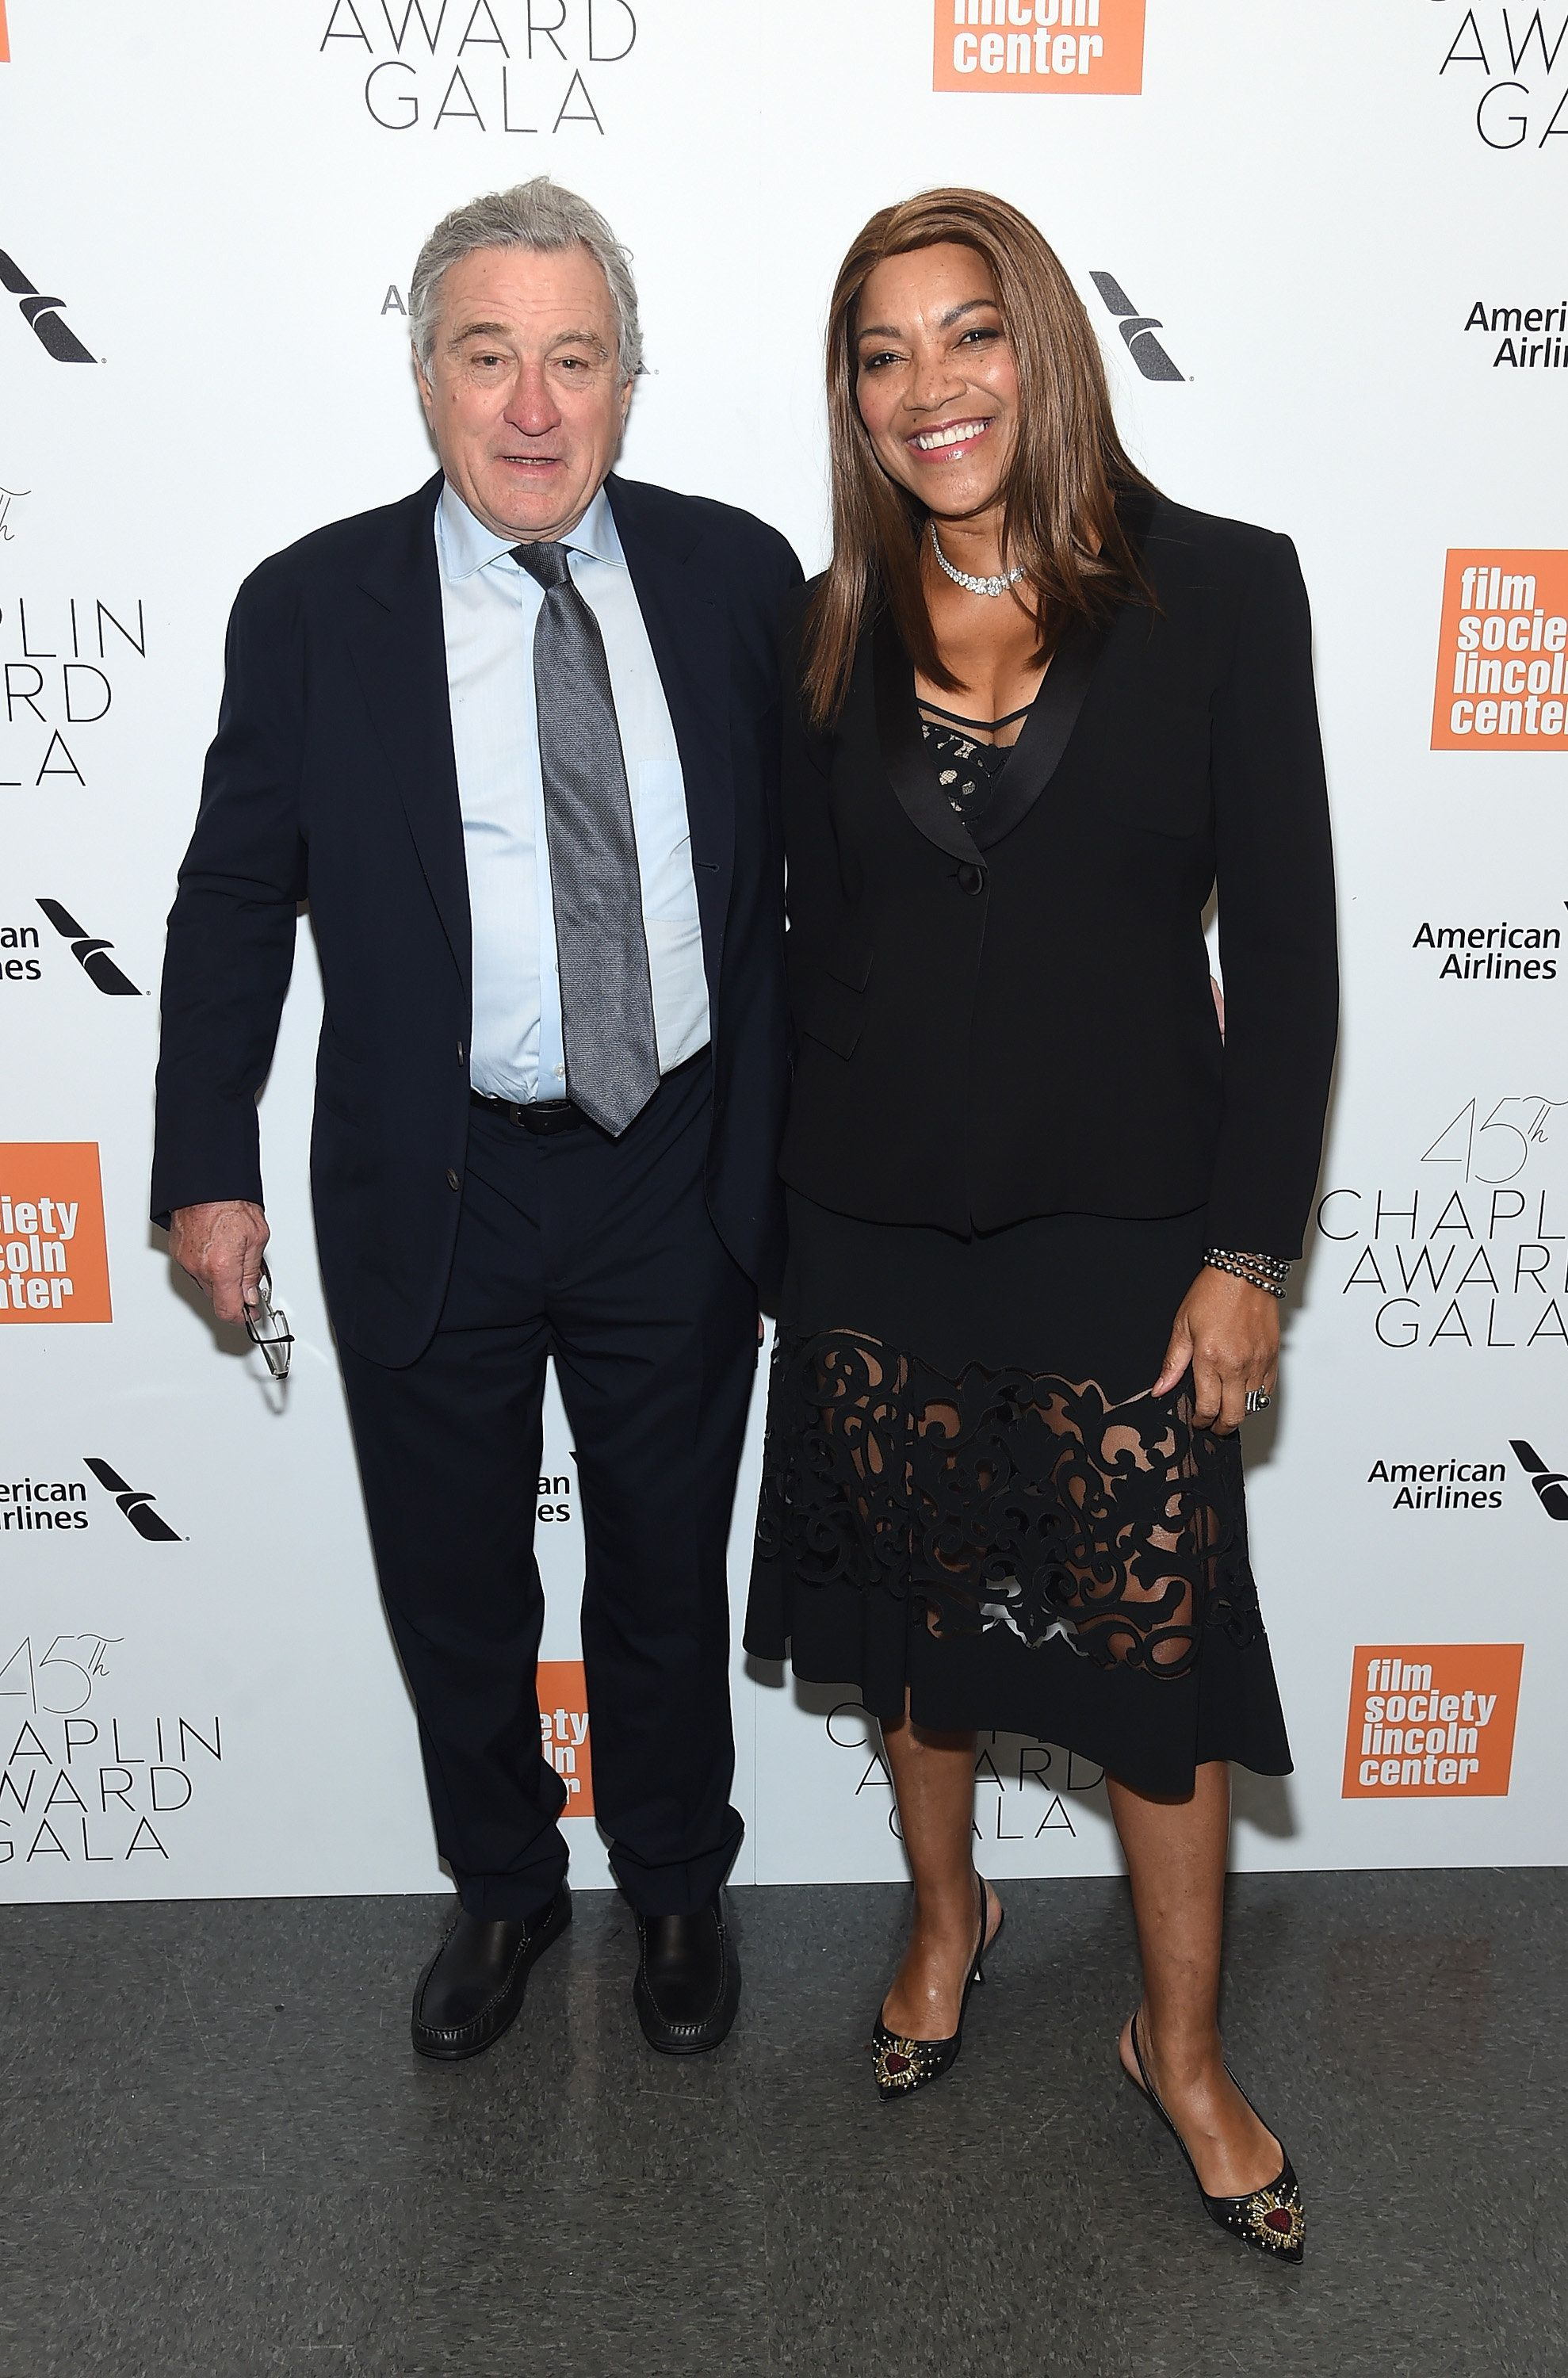 Robert De Niro and Grace Hightower at the Chaplin Award Gala in New York City on April 30.This month multiple outlets r